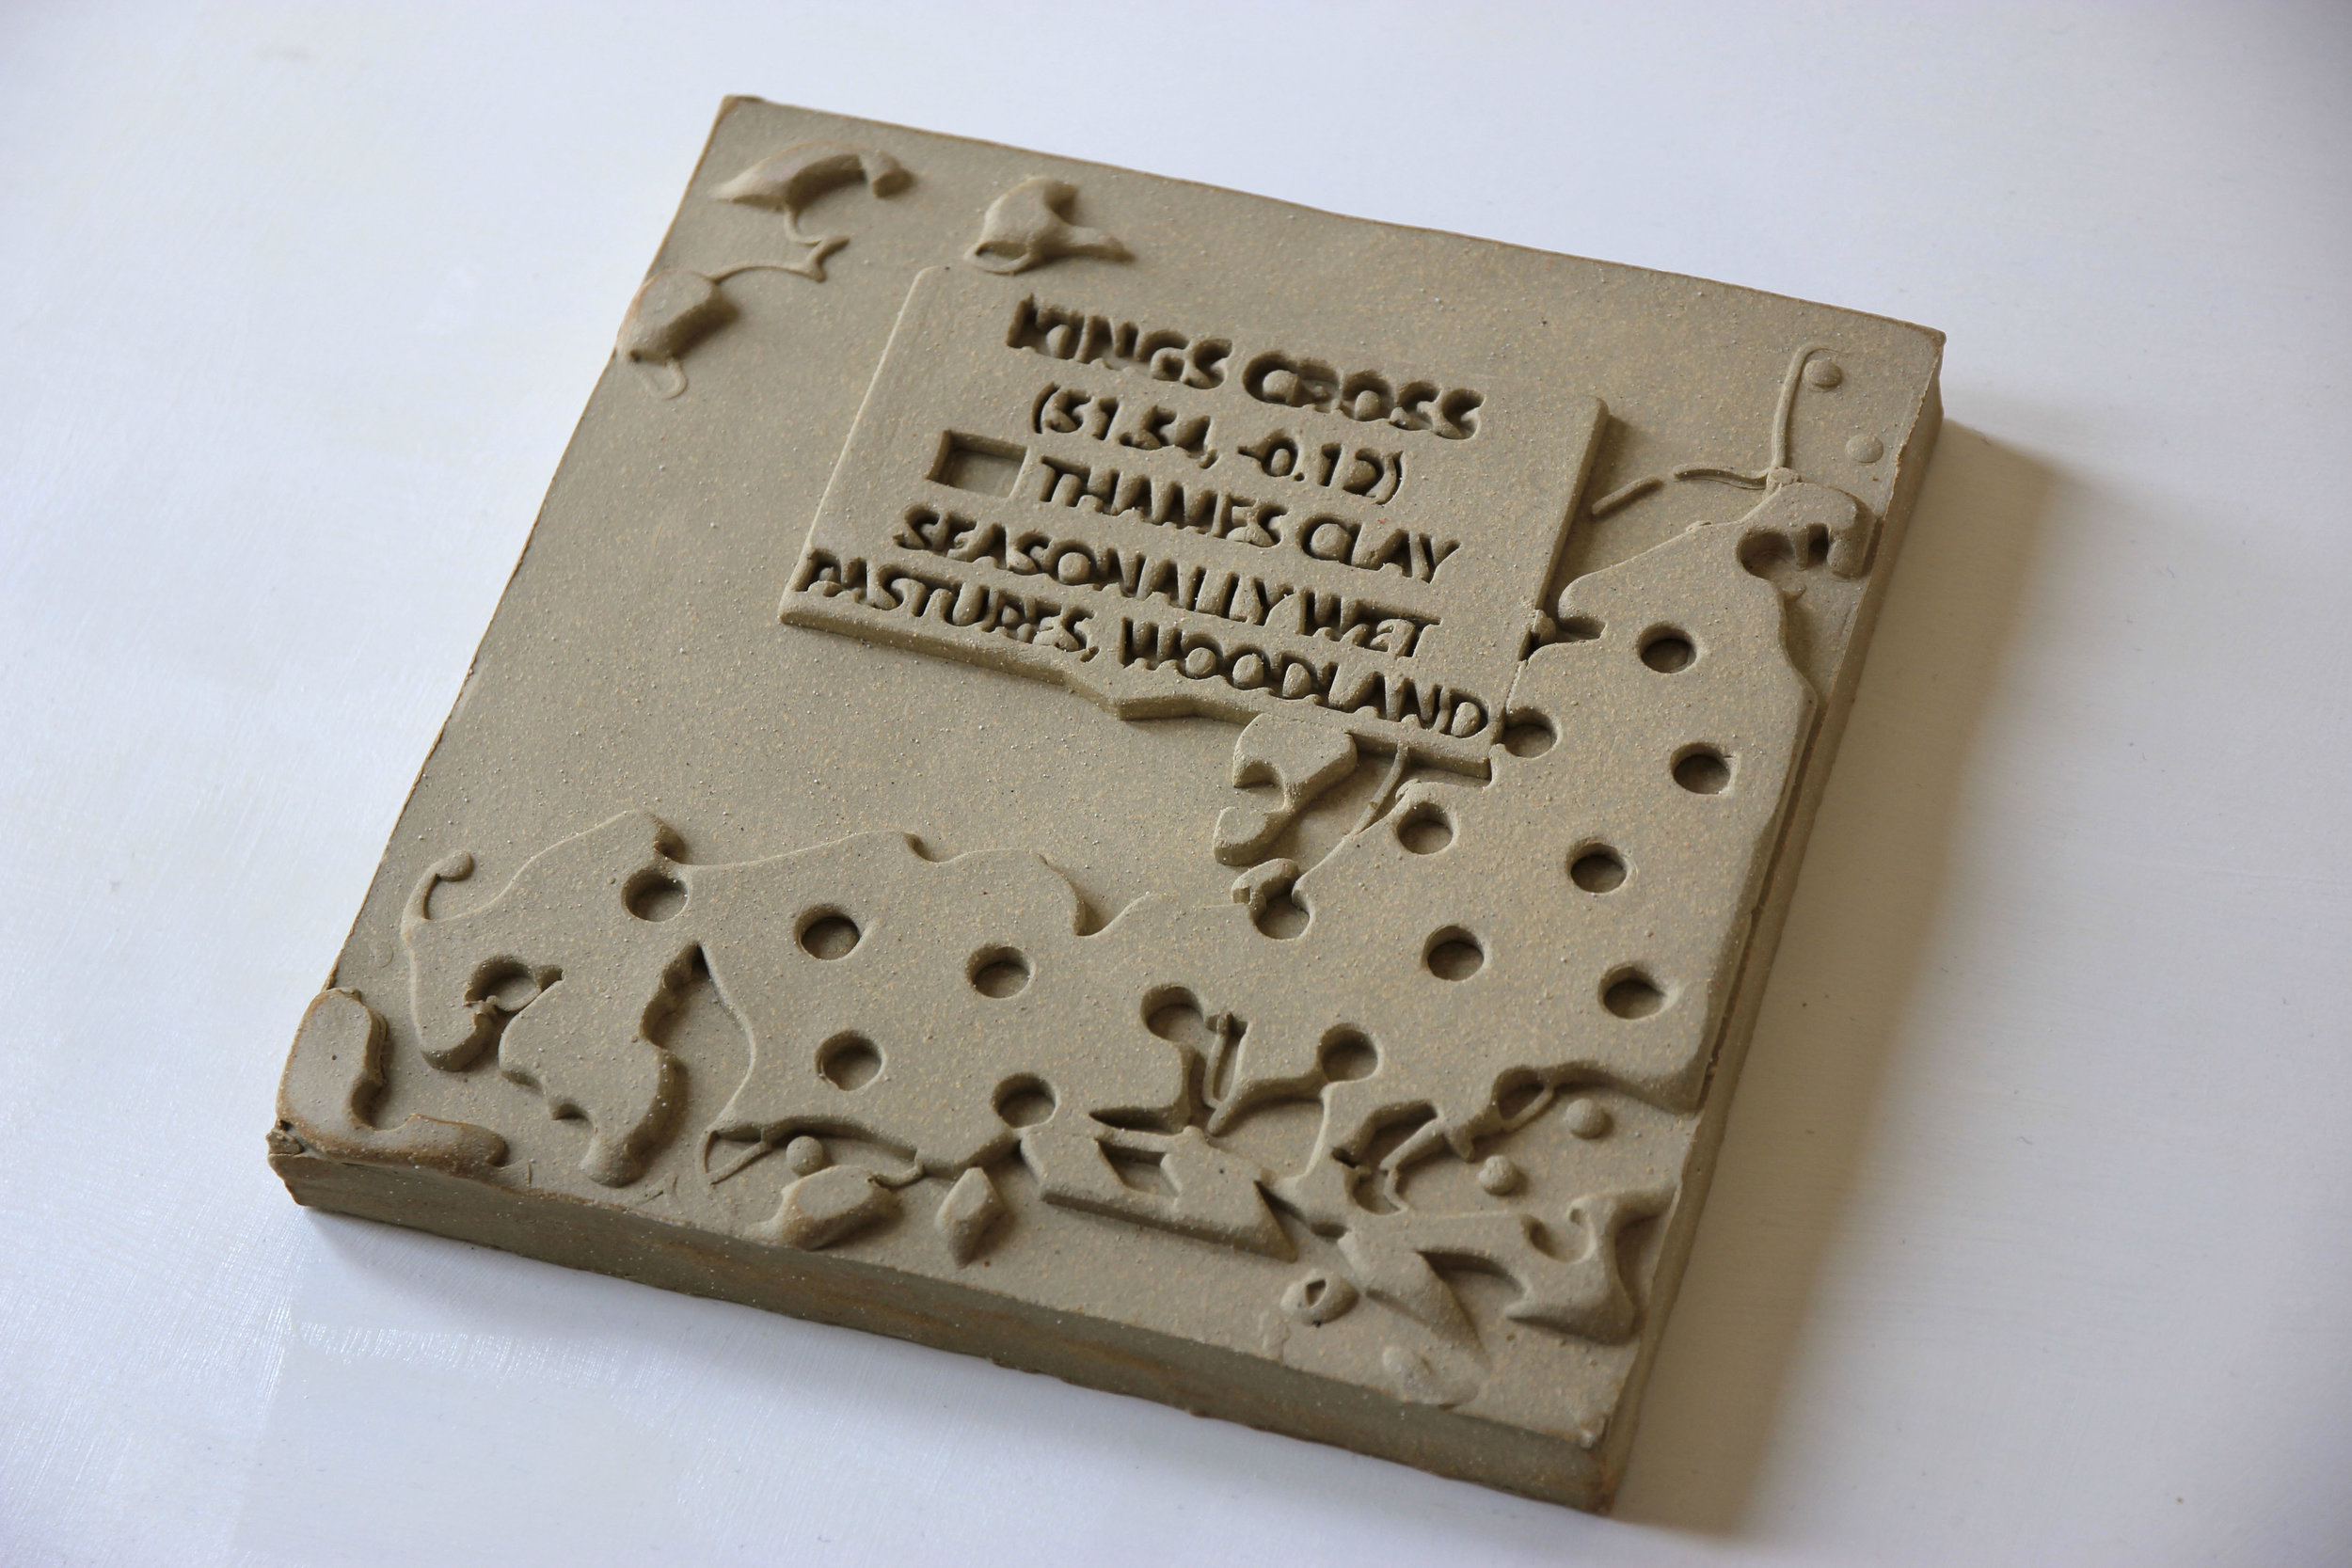 A digitally fabricated clay tablet - the modern take on a Babylonian classic.